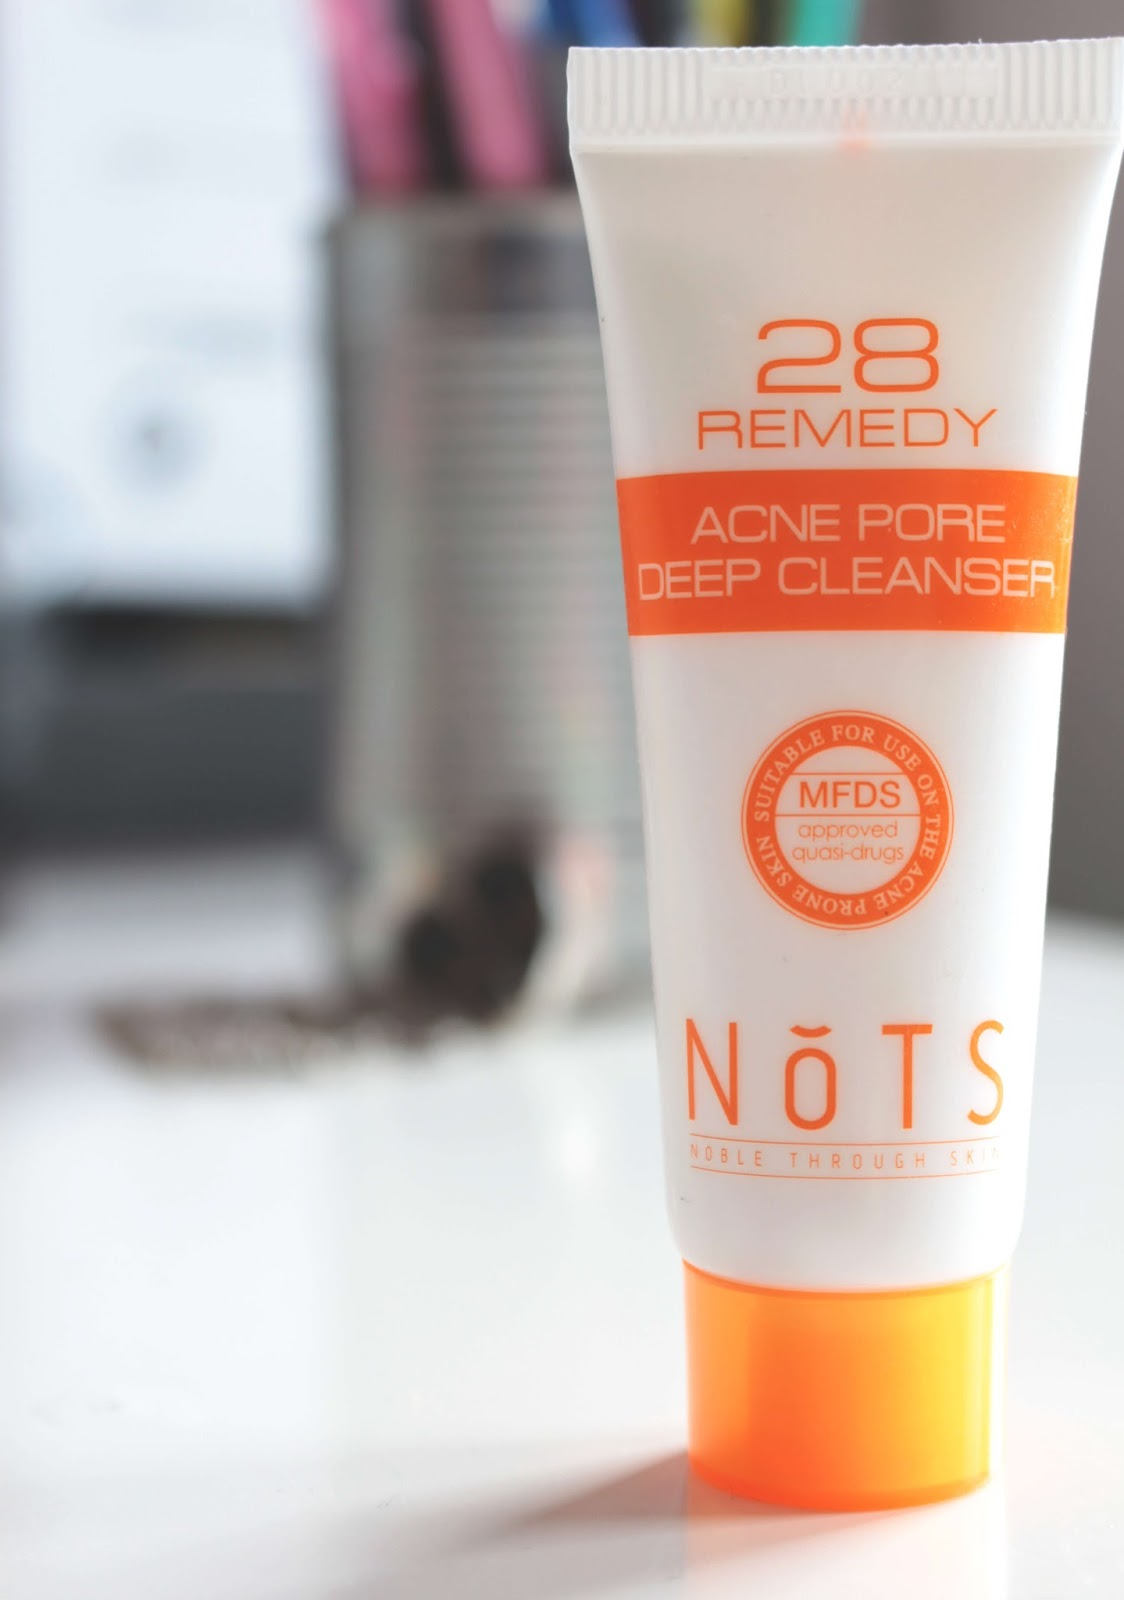 NoTS 28 Remedy Deep Cleanser review